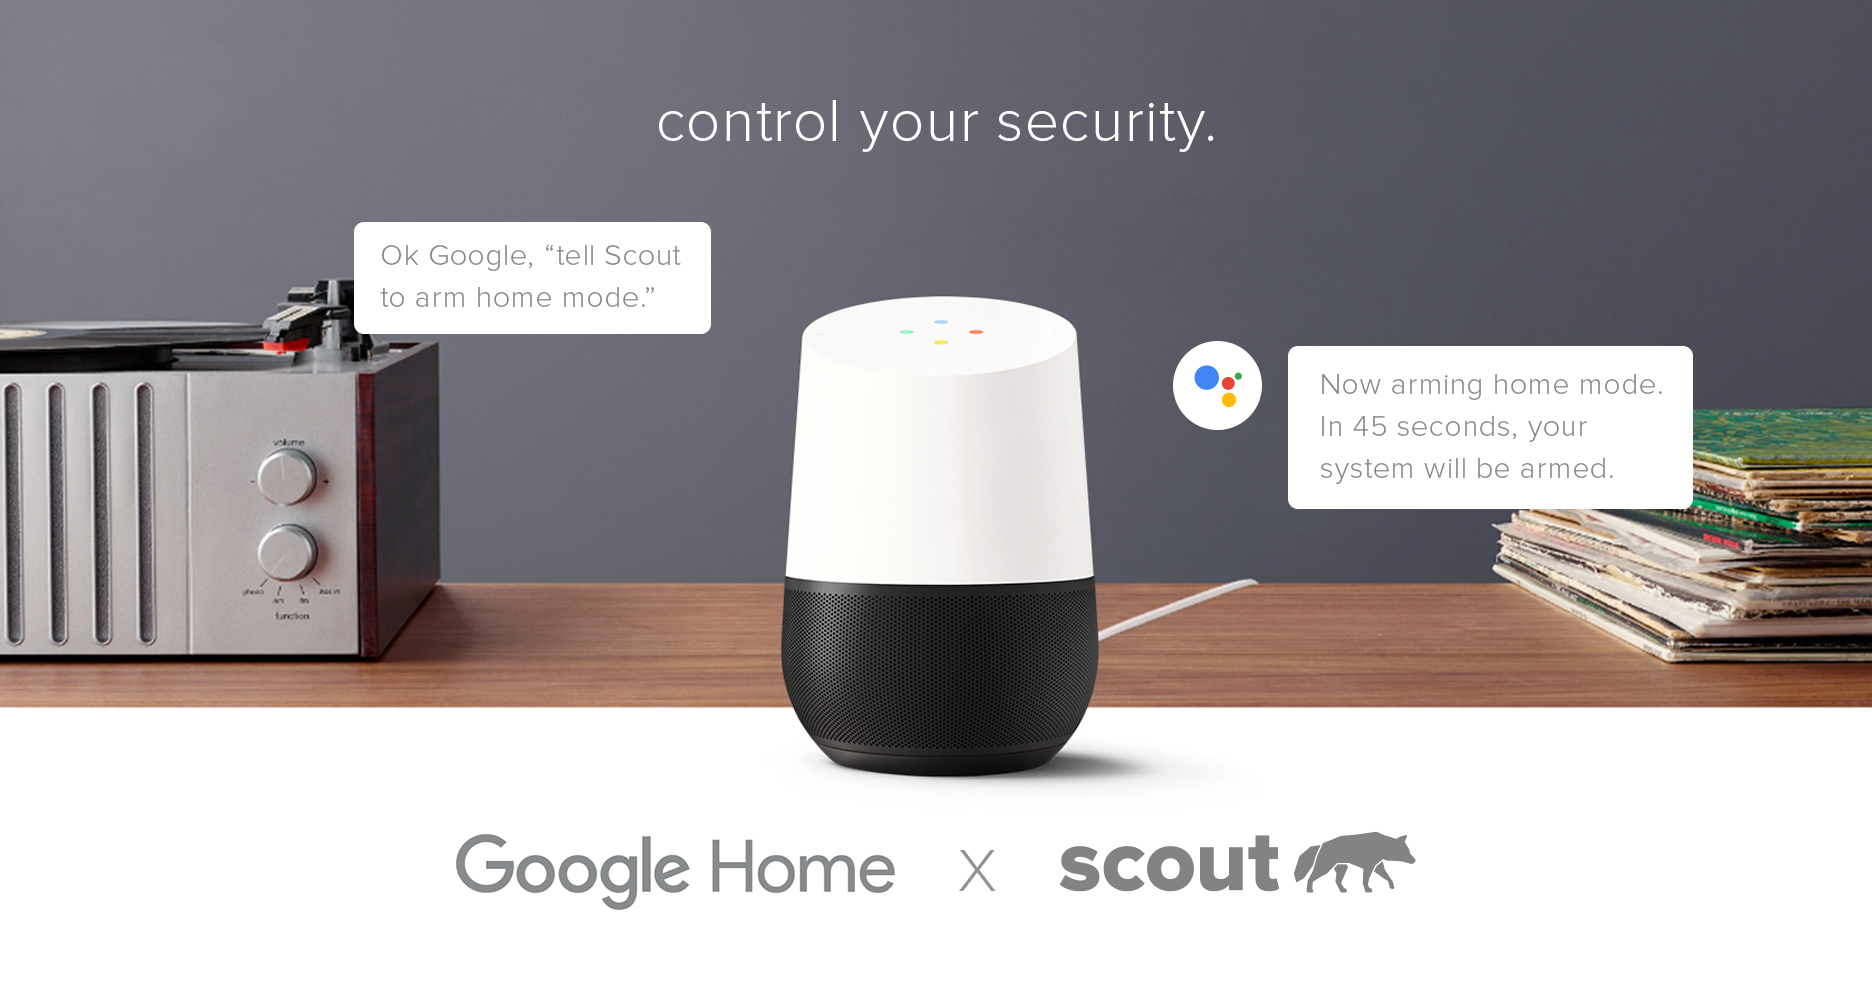 Google Home & Scout Now Work Together to Make Life Better